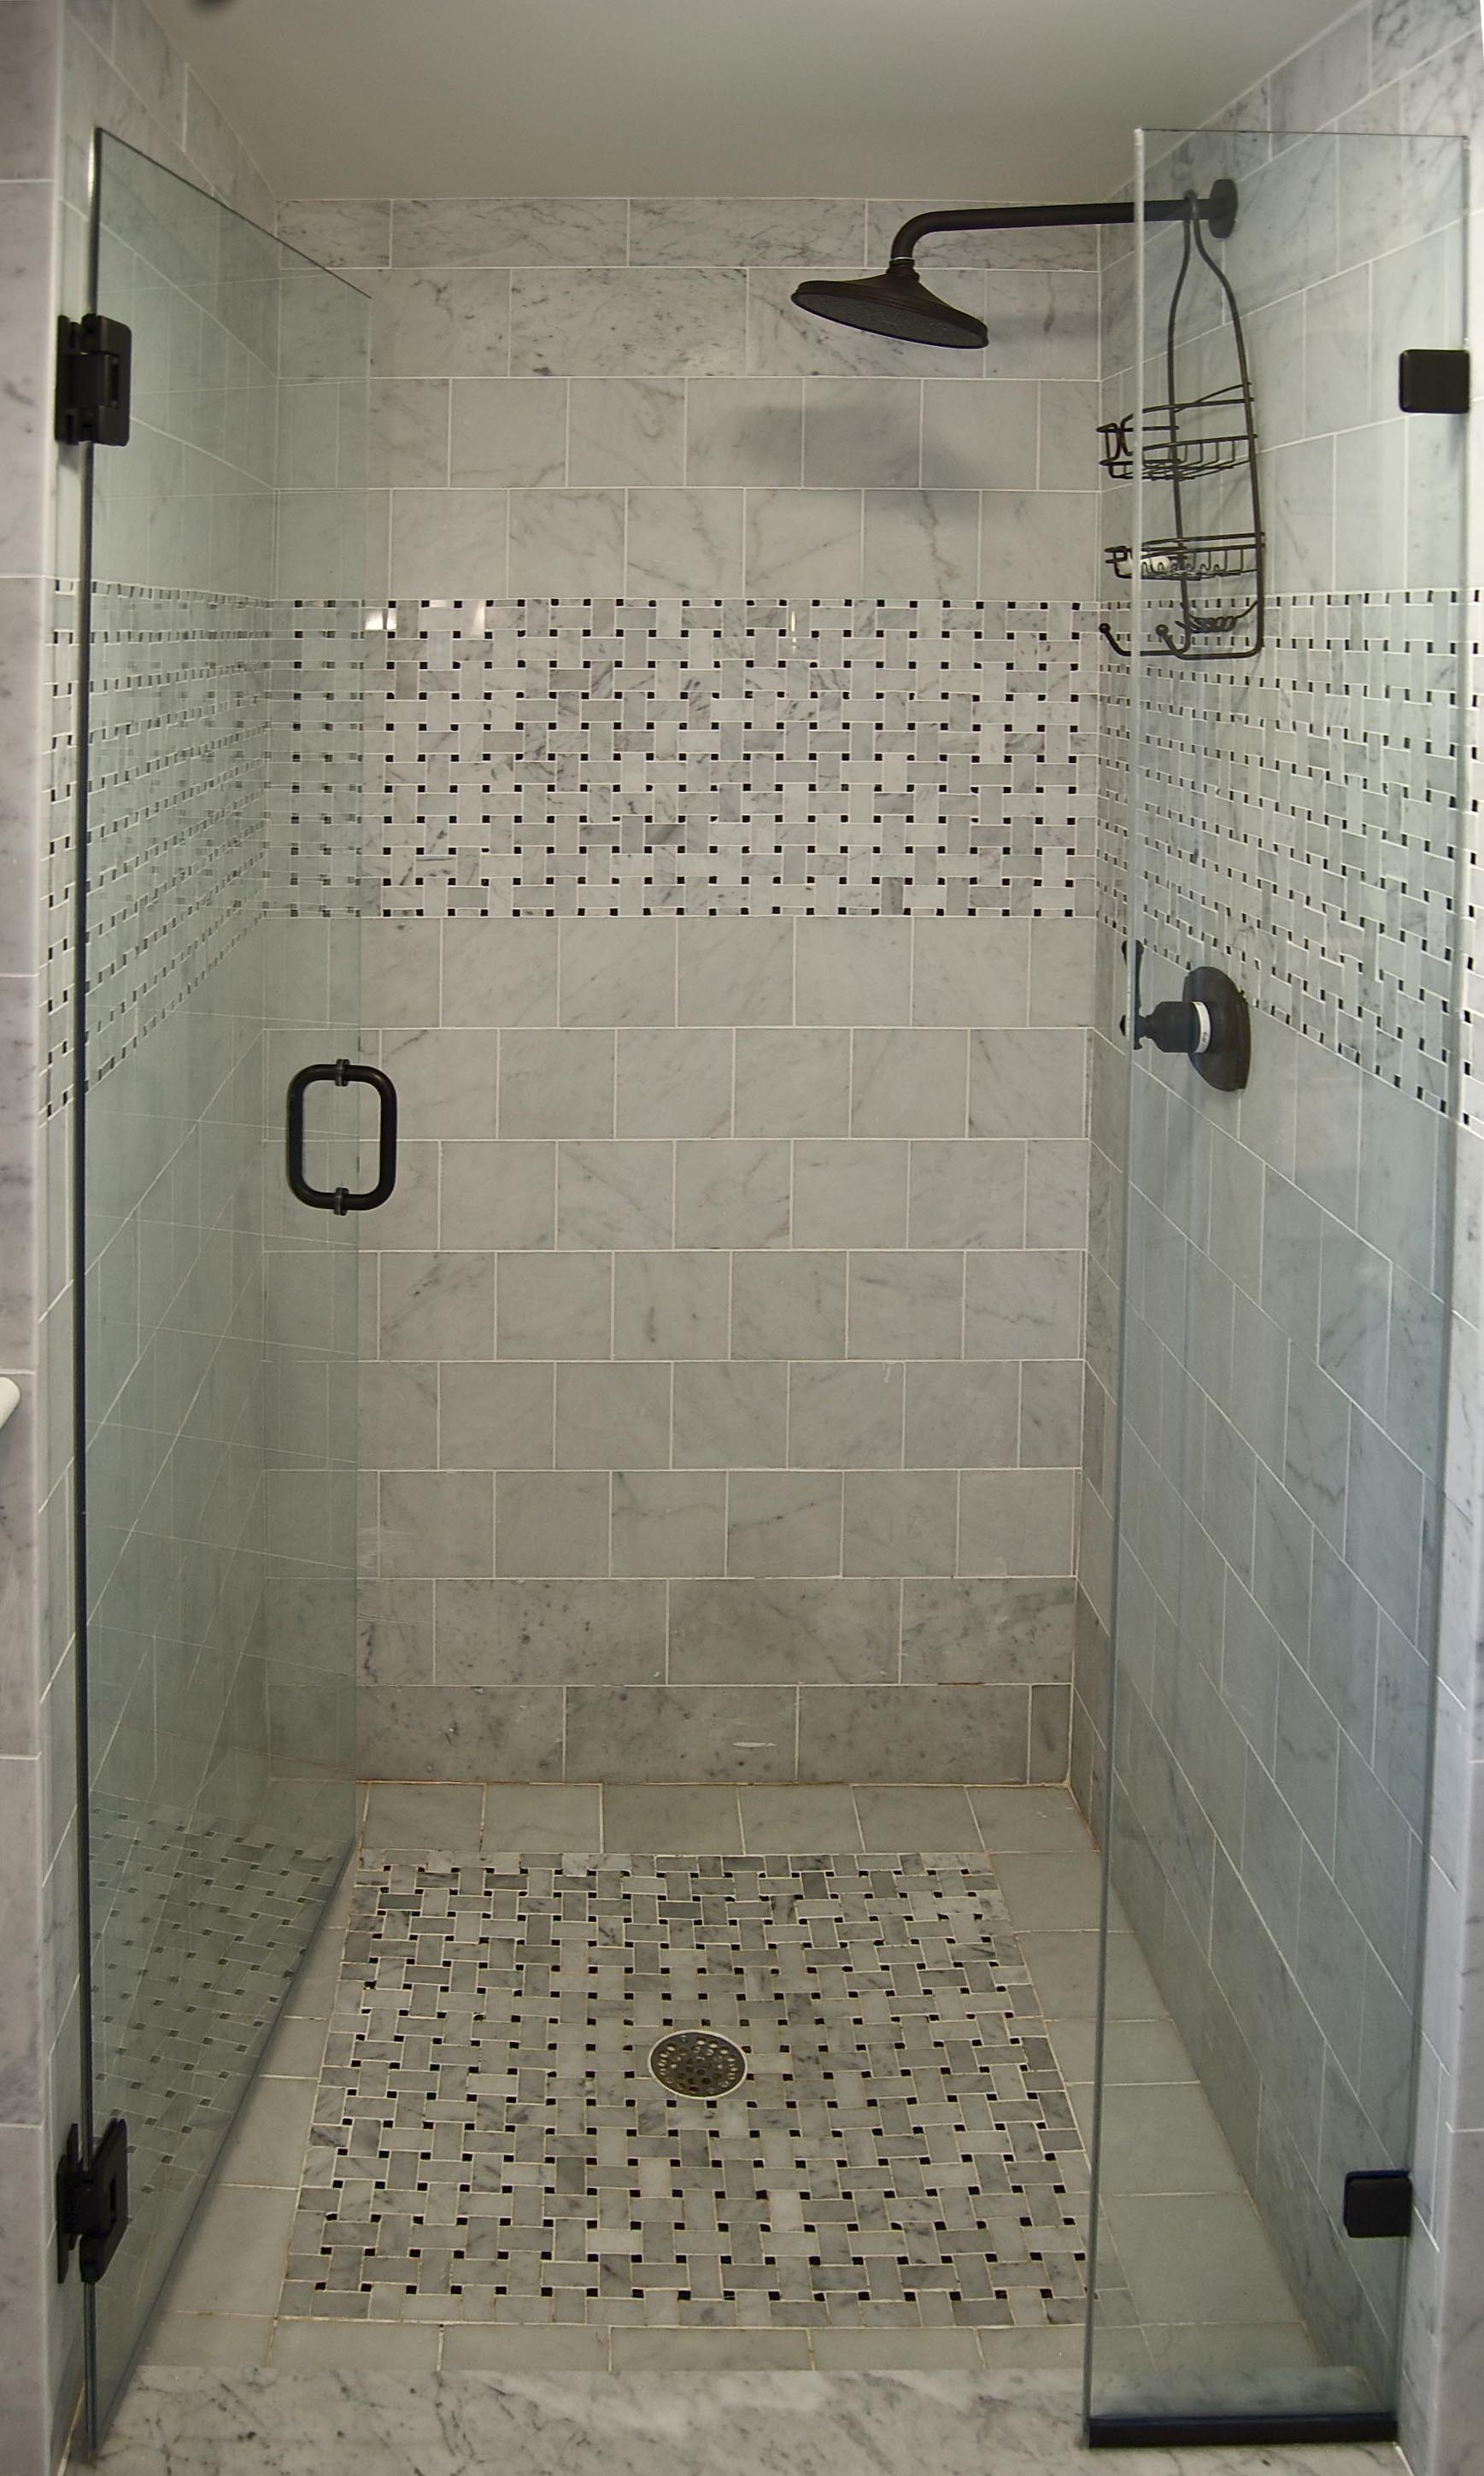 Blog archive small cottage small bathroom - Shower stall designs small bathrooms ...